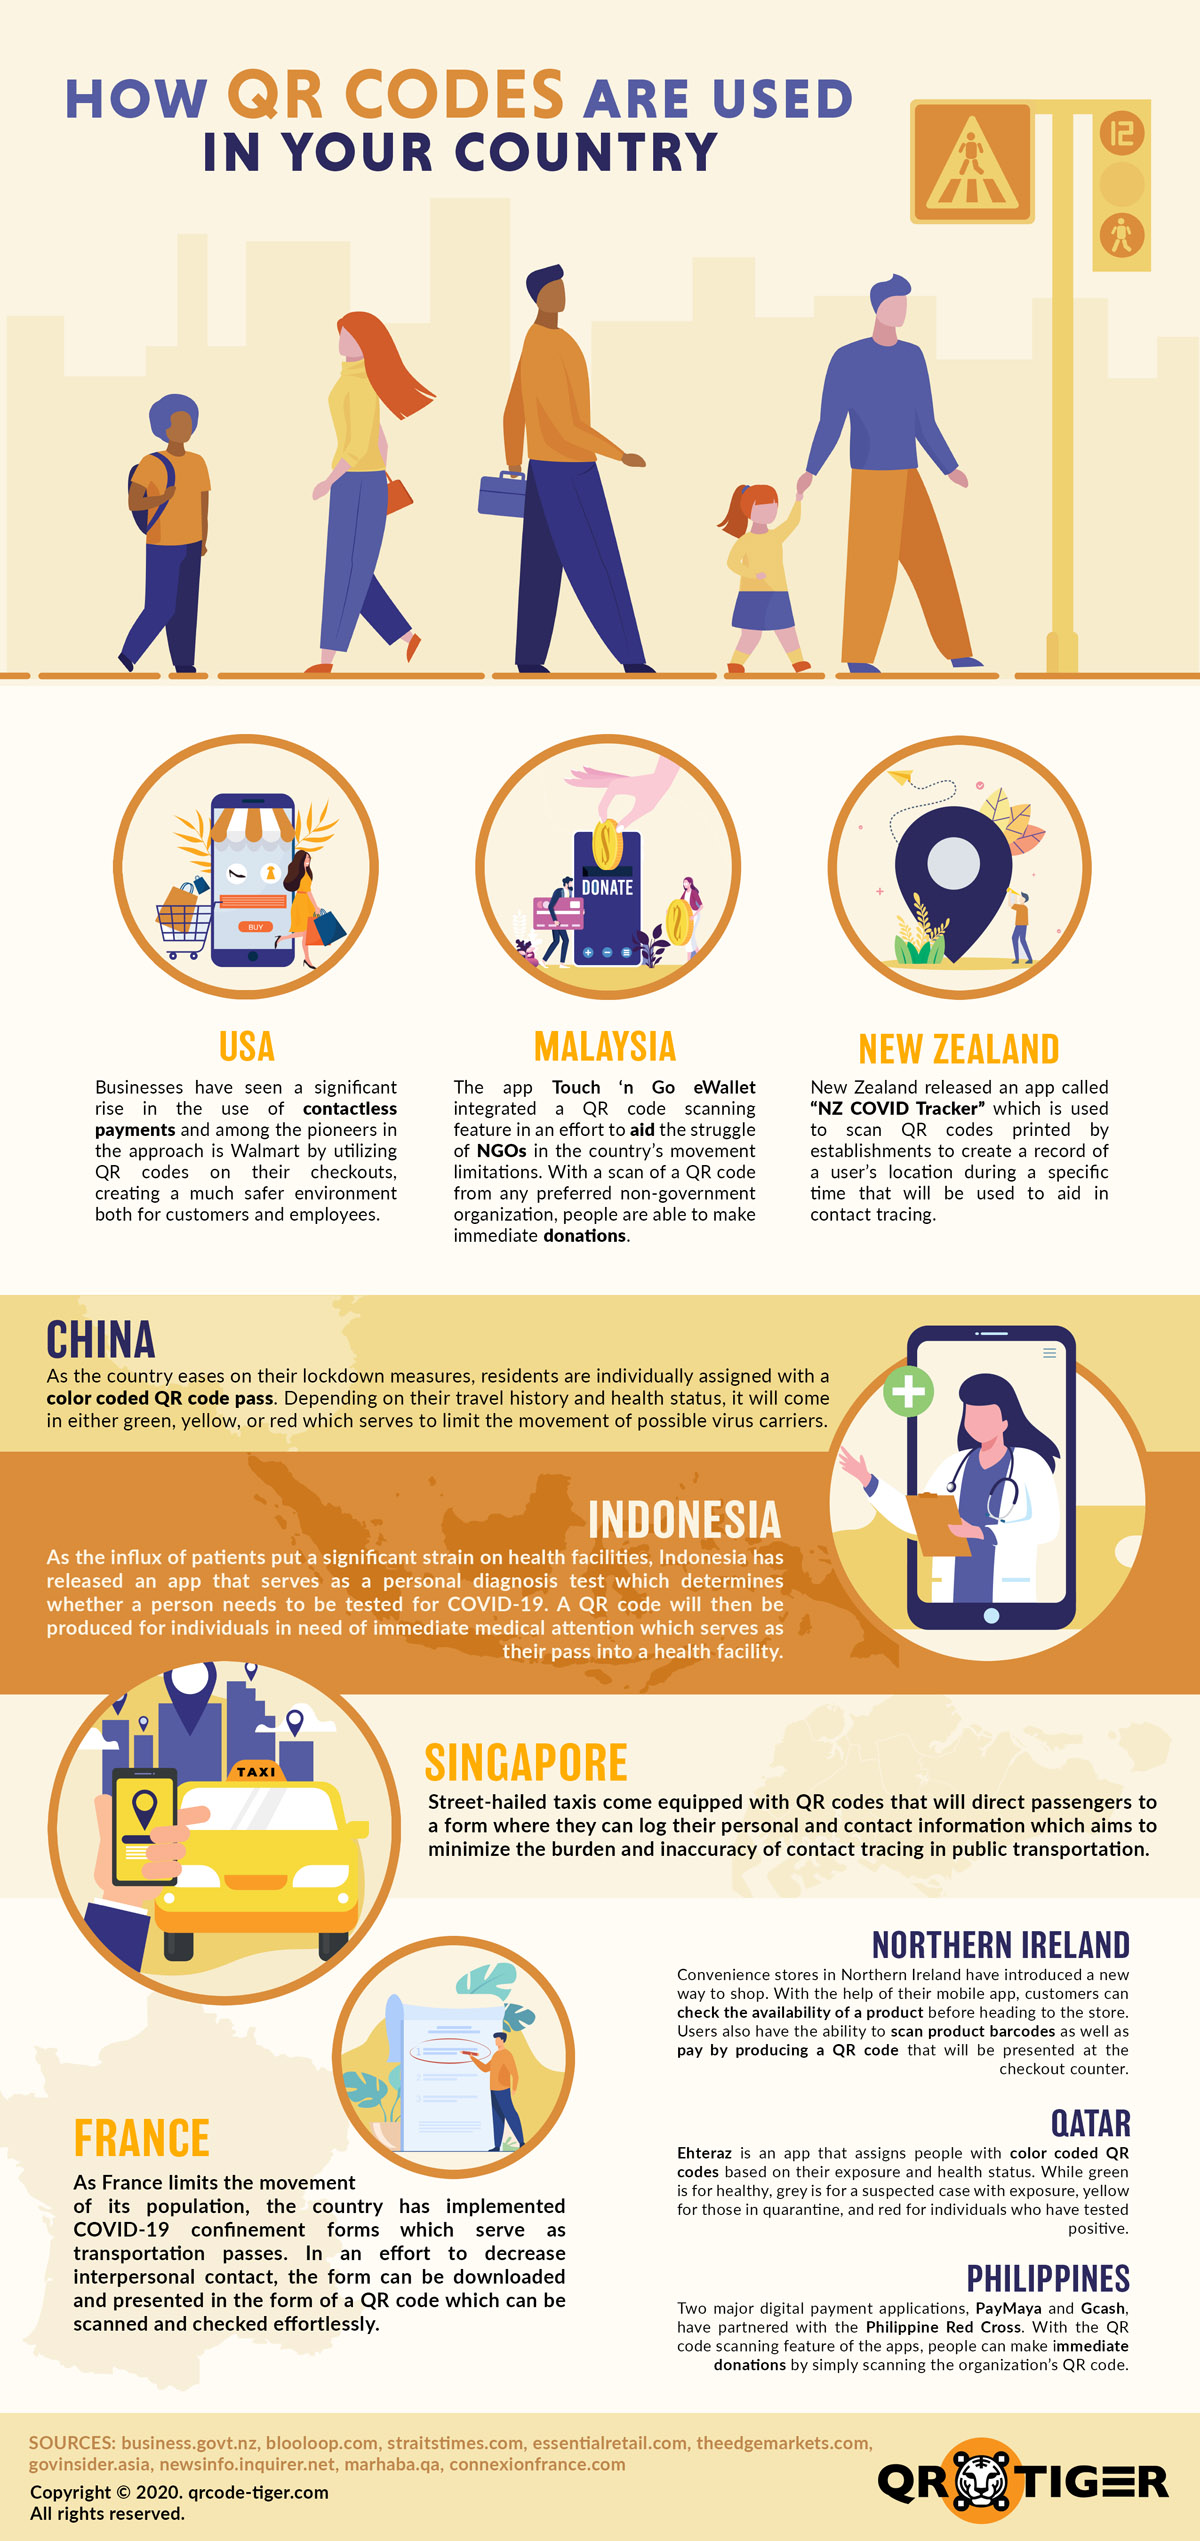 How QR Codes Are Used in Your Country